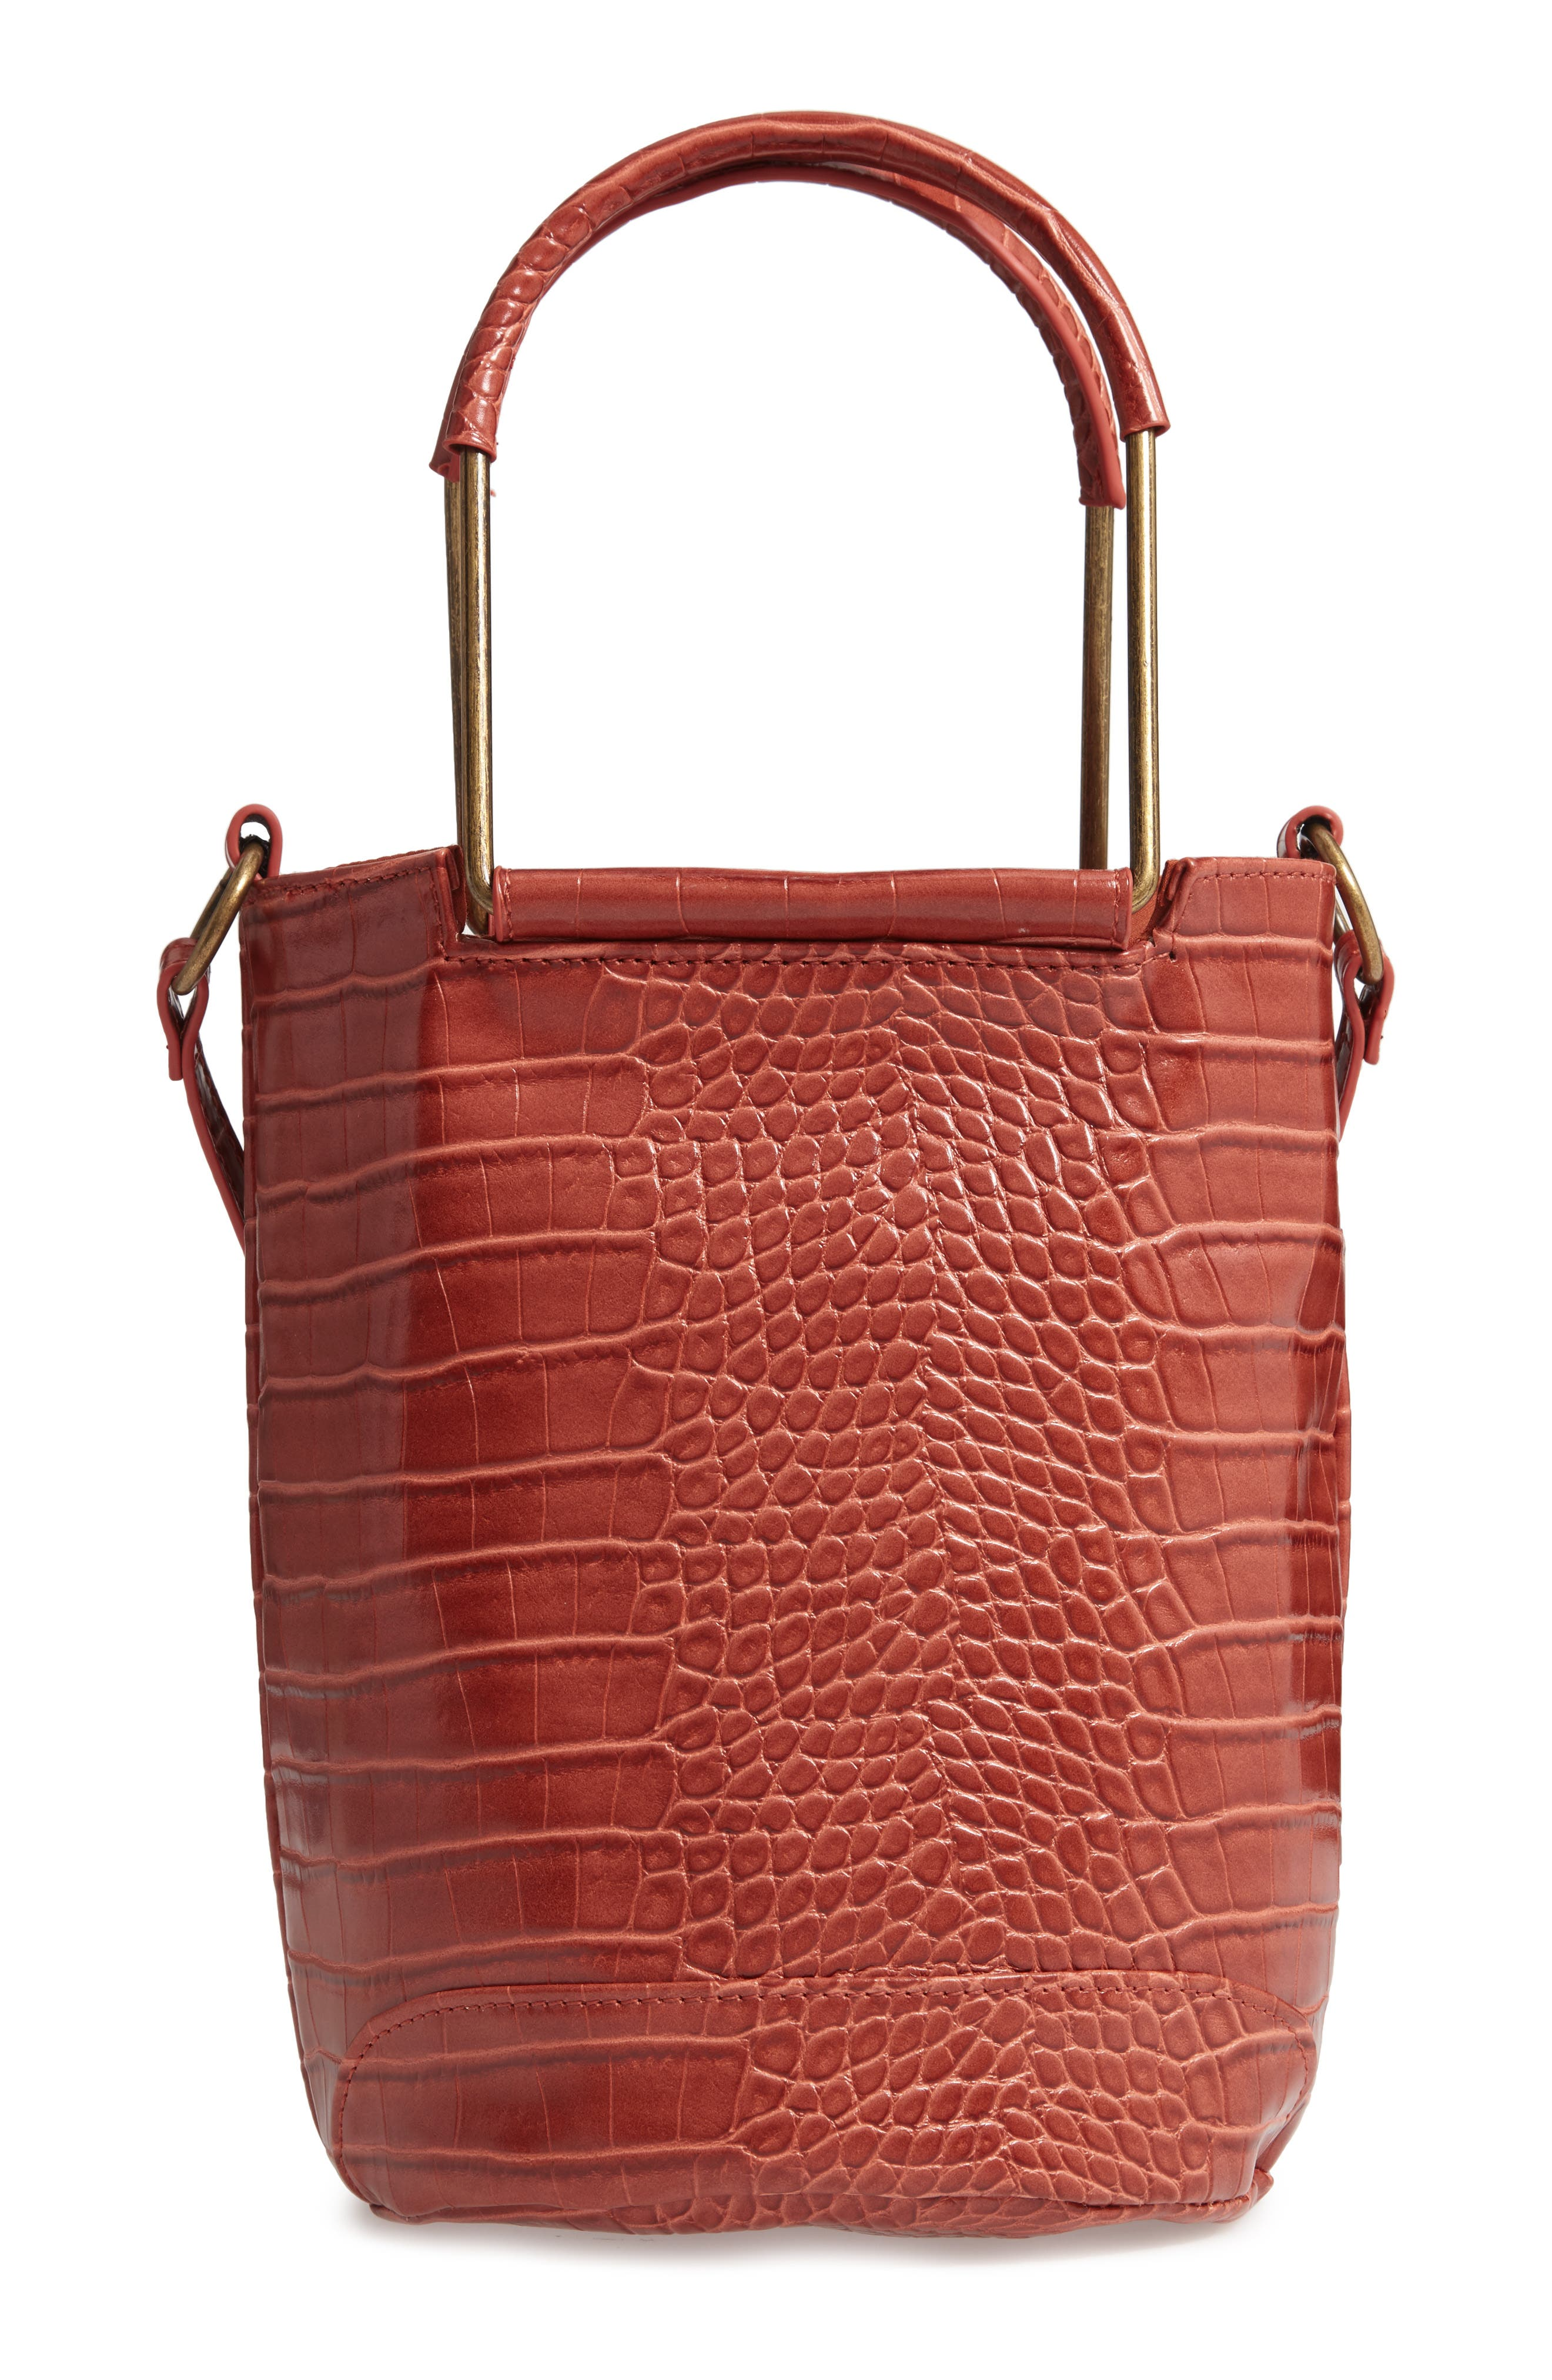 T-SHIRT & JEANS Croc Embossed Faux Leather Tote, Main, color, 810